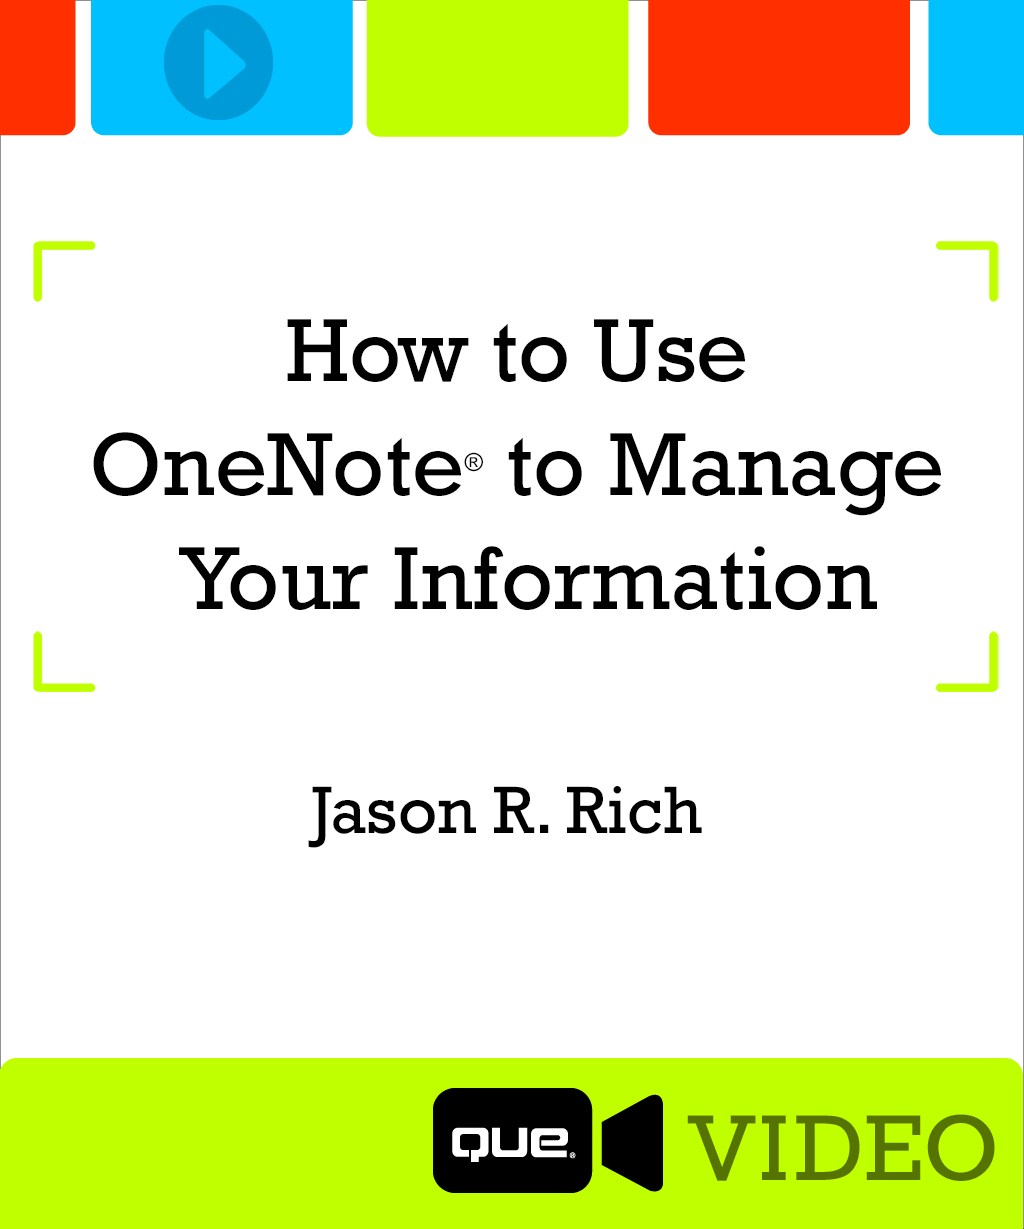 Part 6: Using OneNote in the Real World